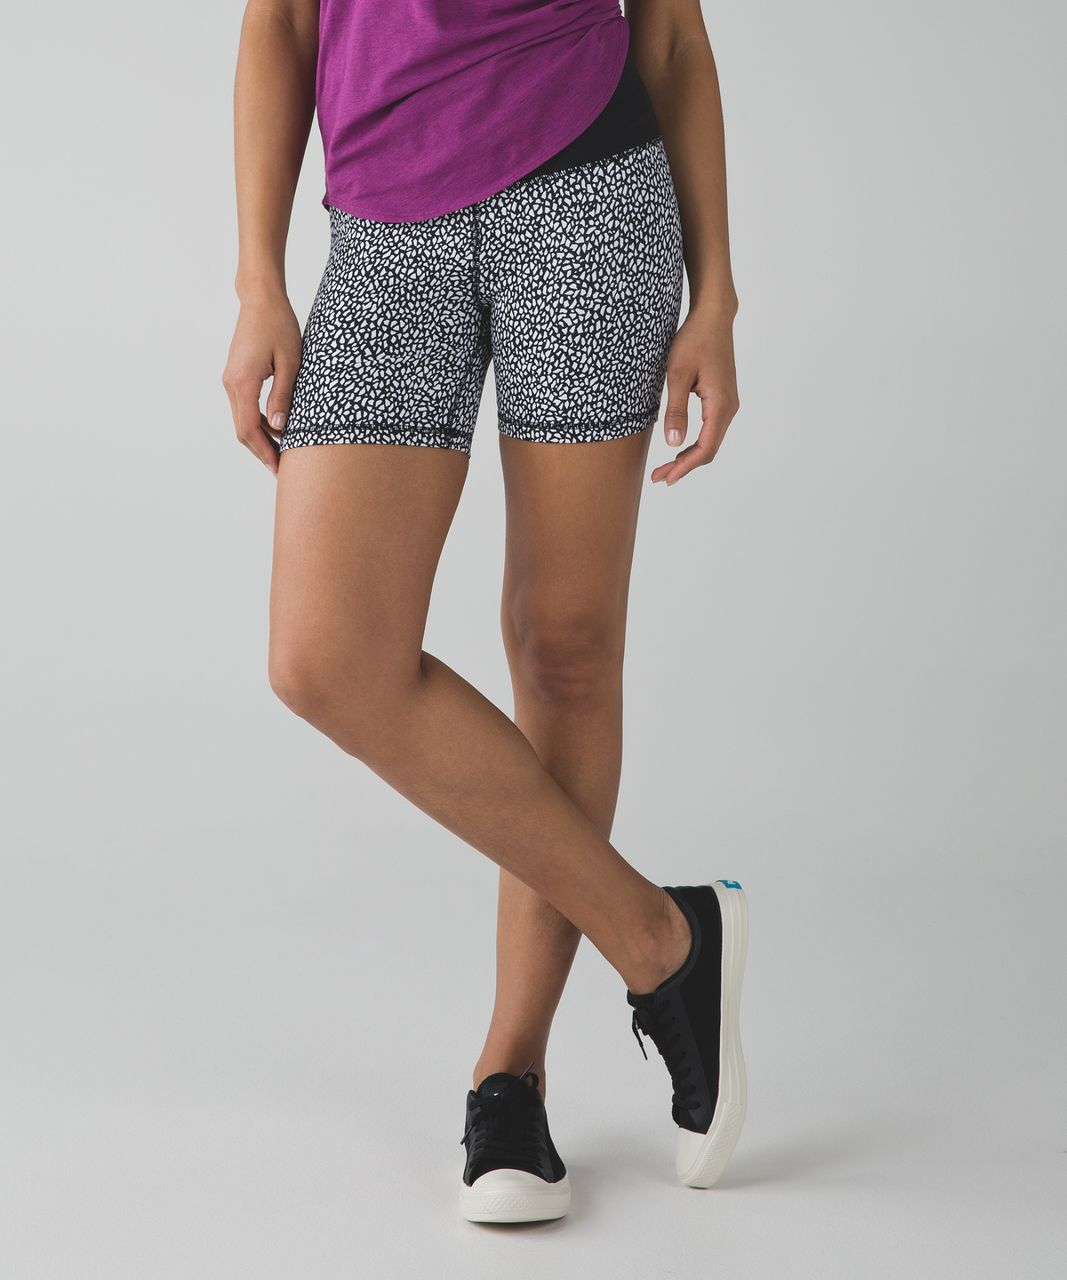 Lululemon Groove Short II (Regular) - Miss Mosaic Black / Black